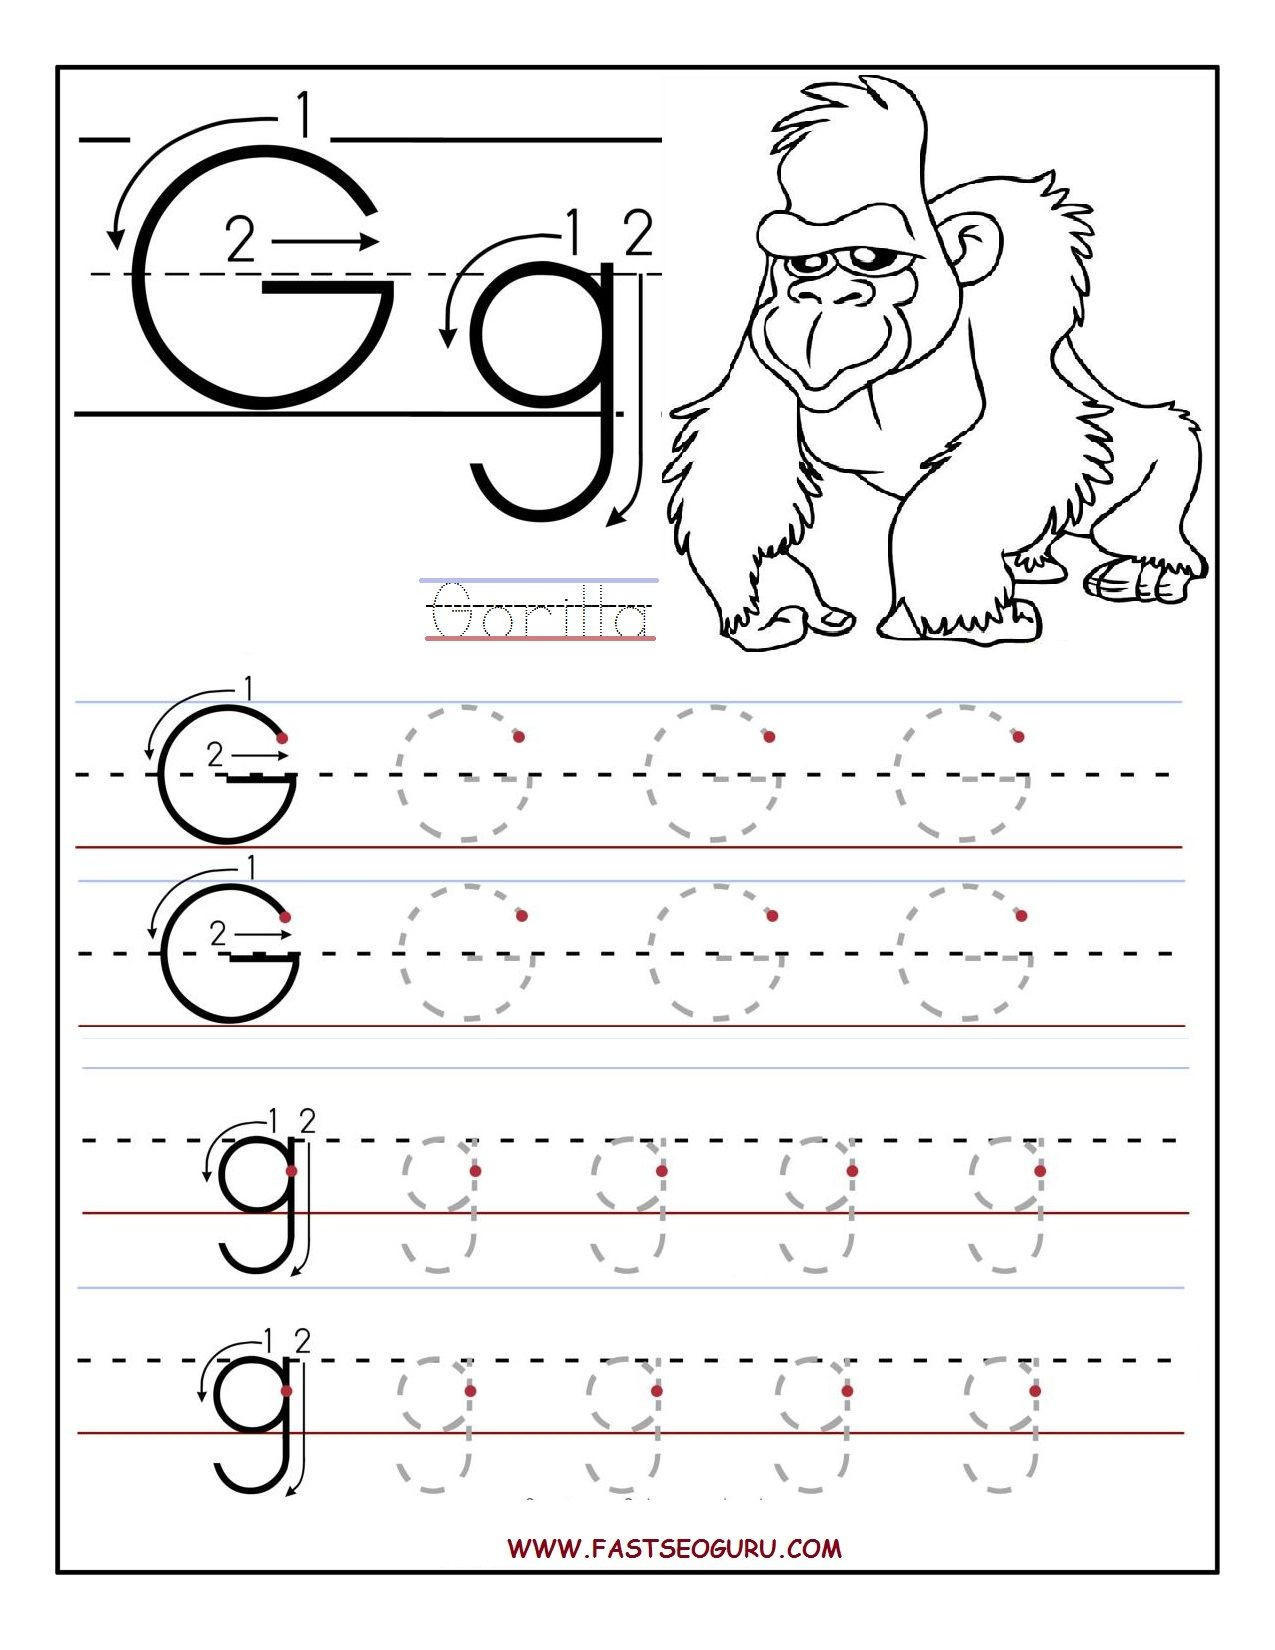 G Worksheets for Preschool Printable Letter G Tracing Worksheets for Preschool